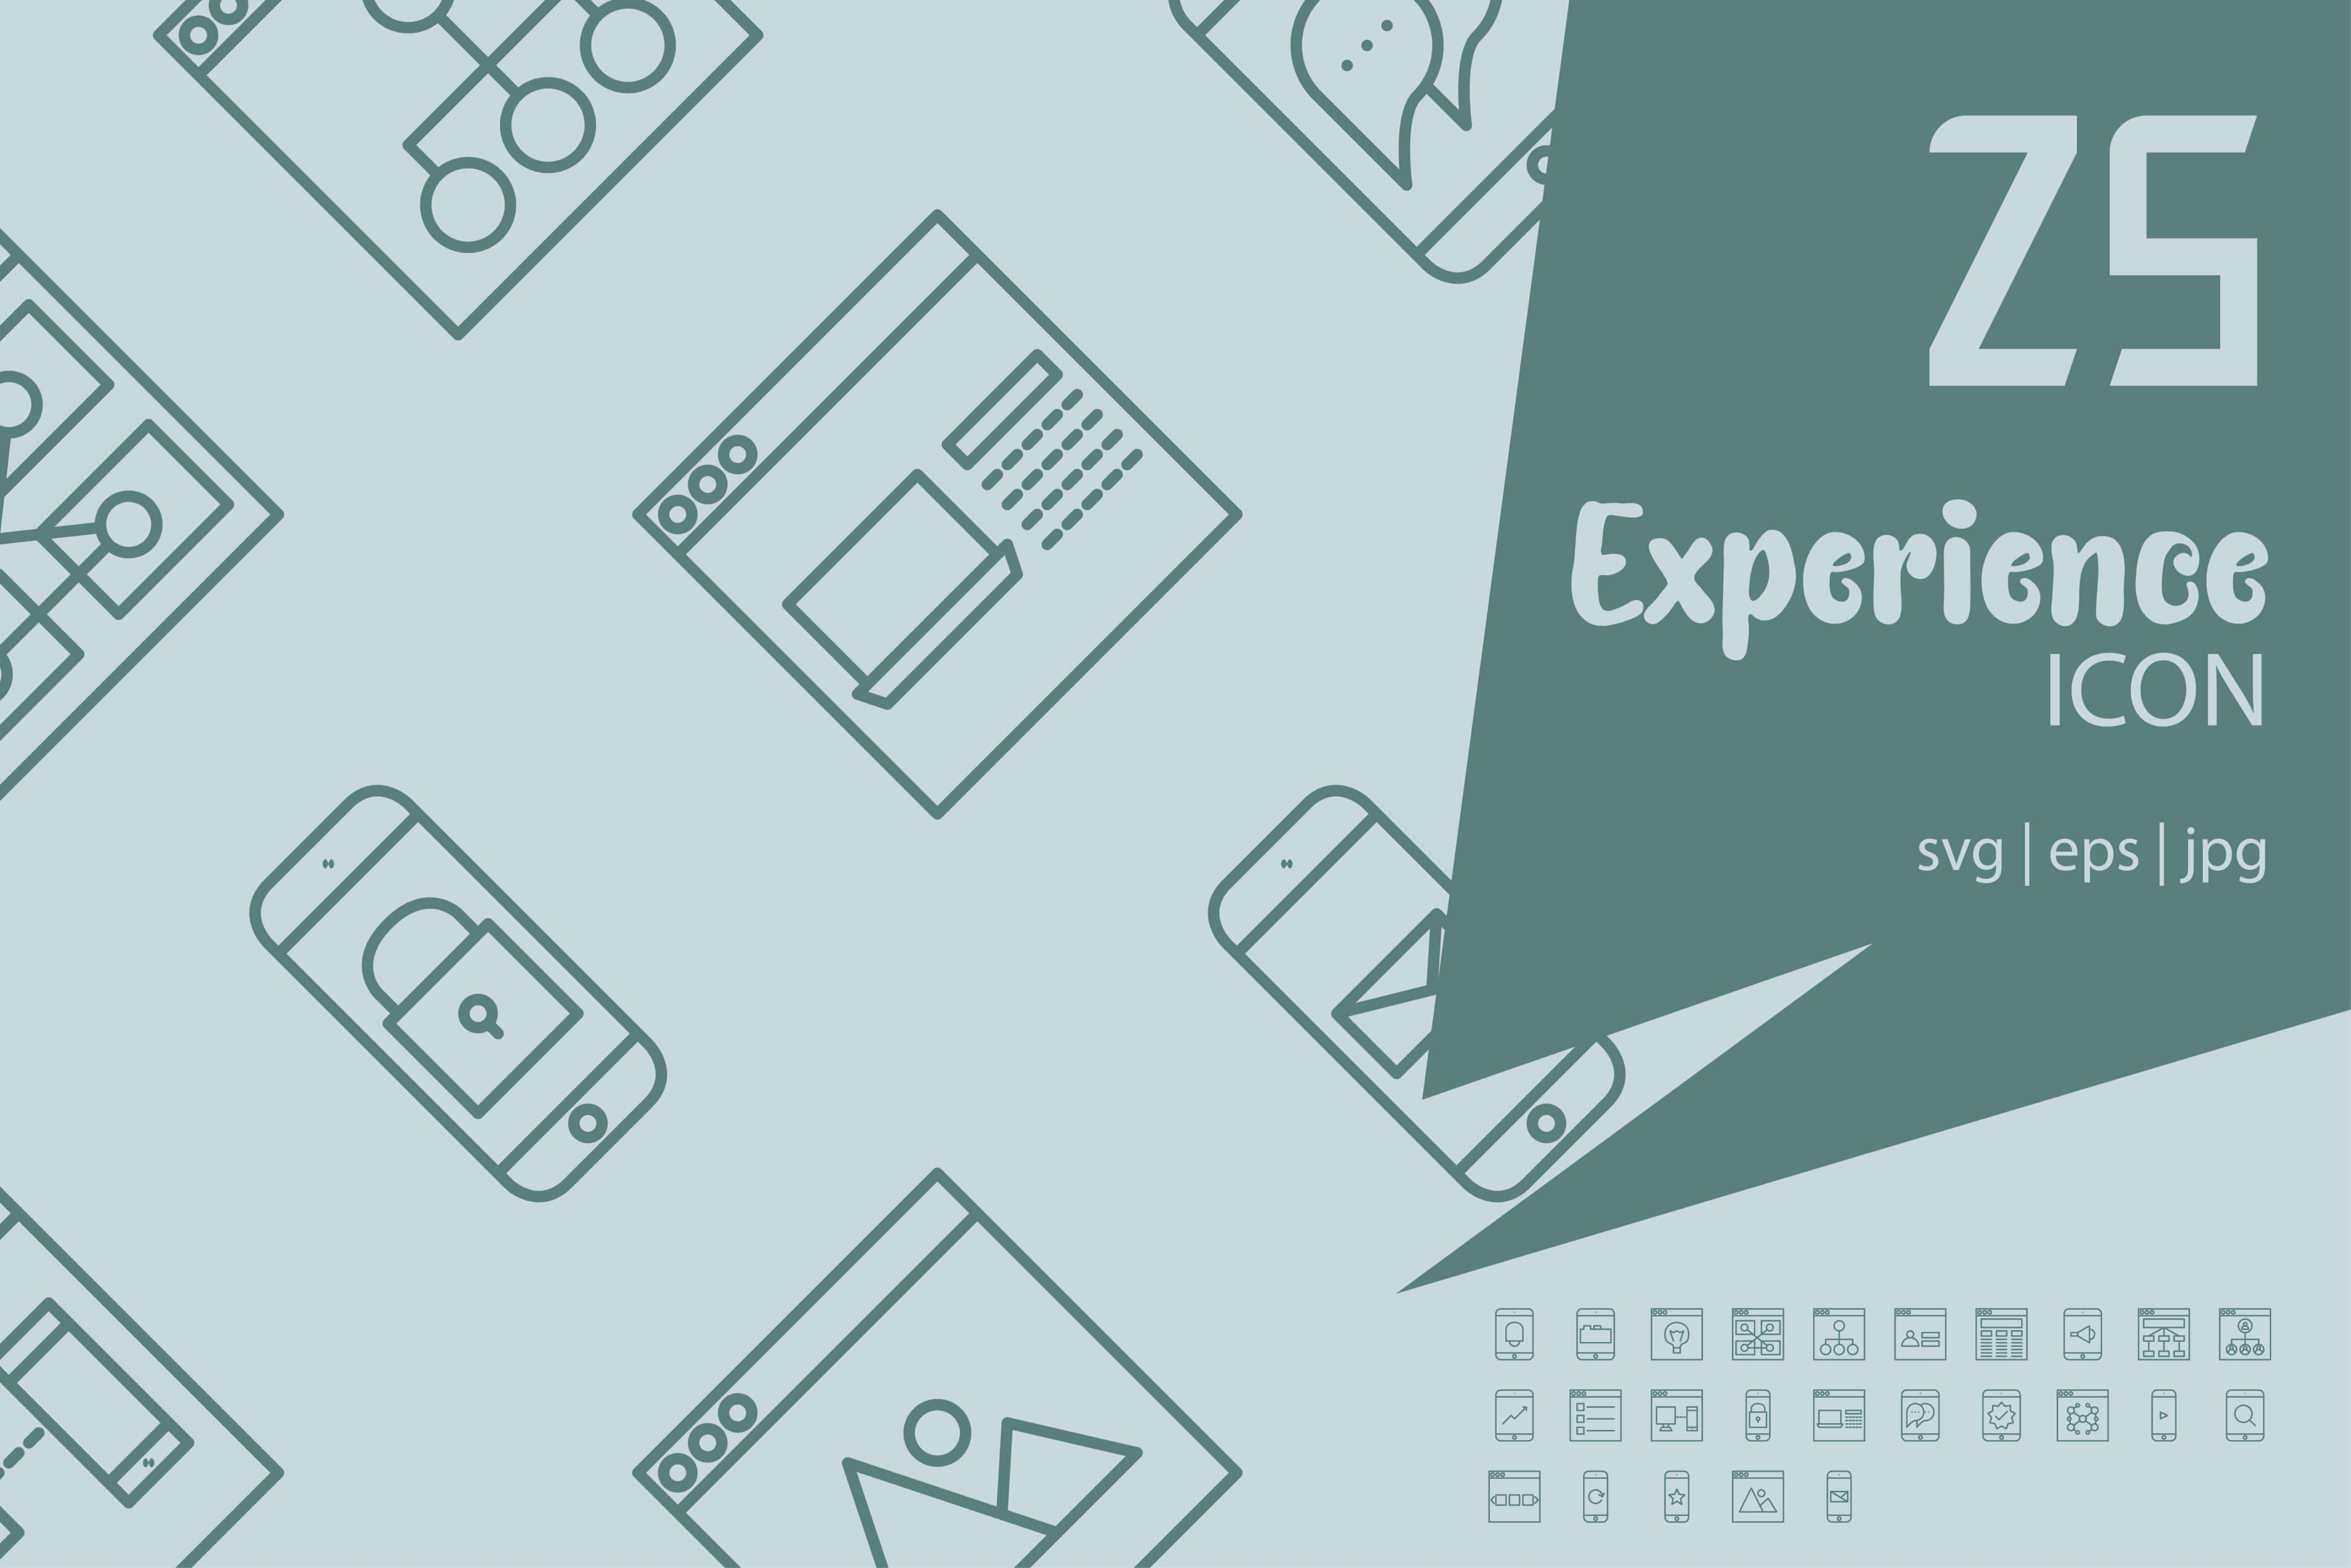 Download Free Experience Graphic By Astuti Julia92 Creative Fabrica for Cricut Explore, Silhouette and other cutting machines.